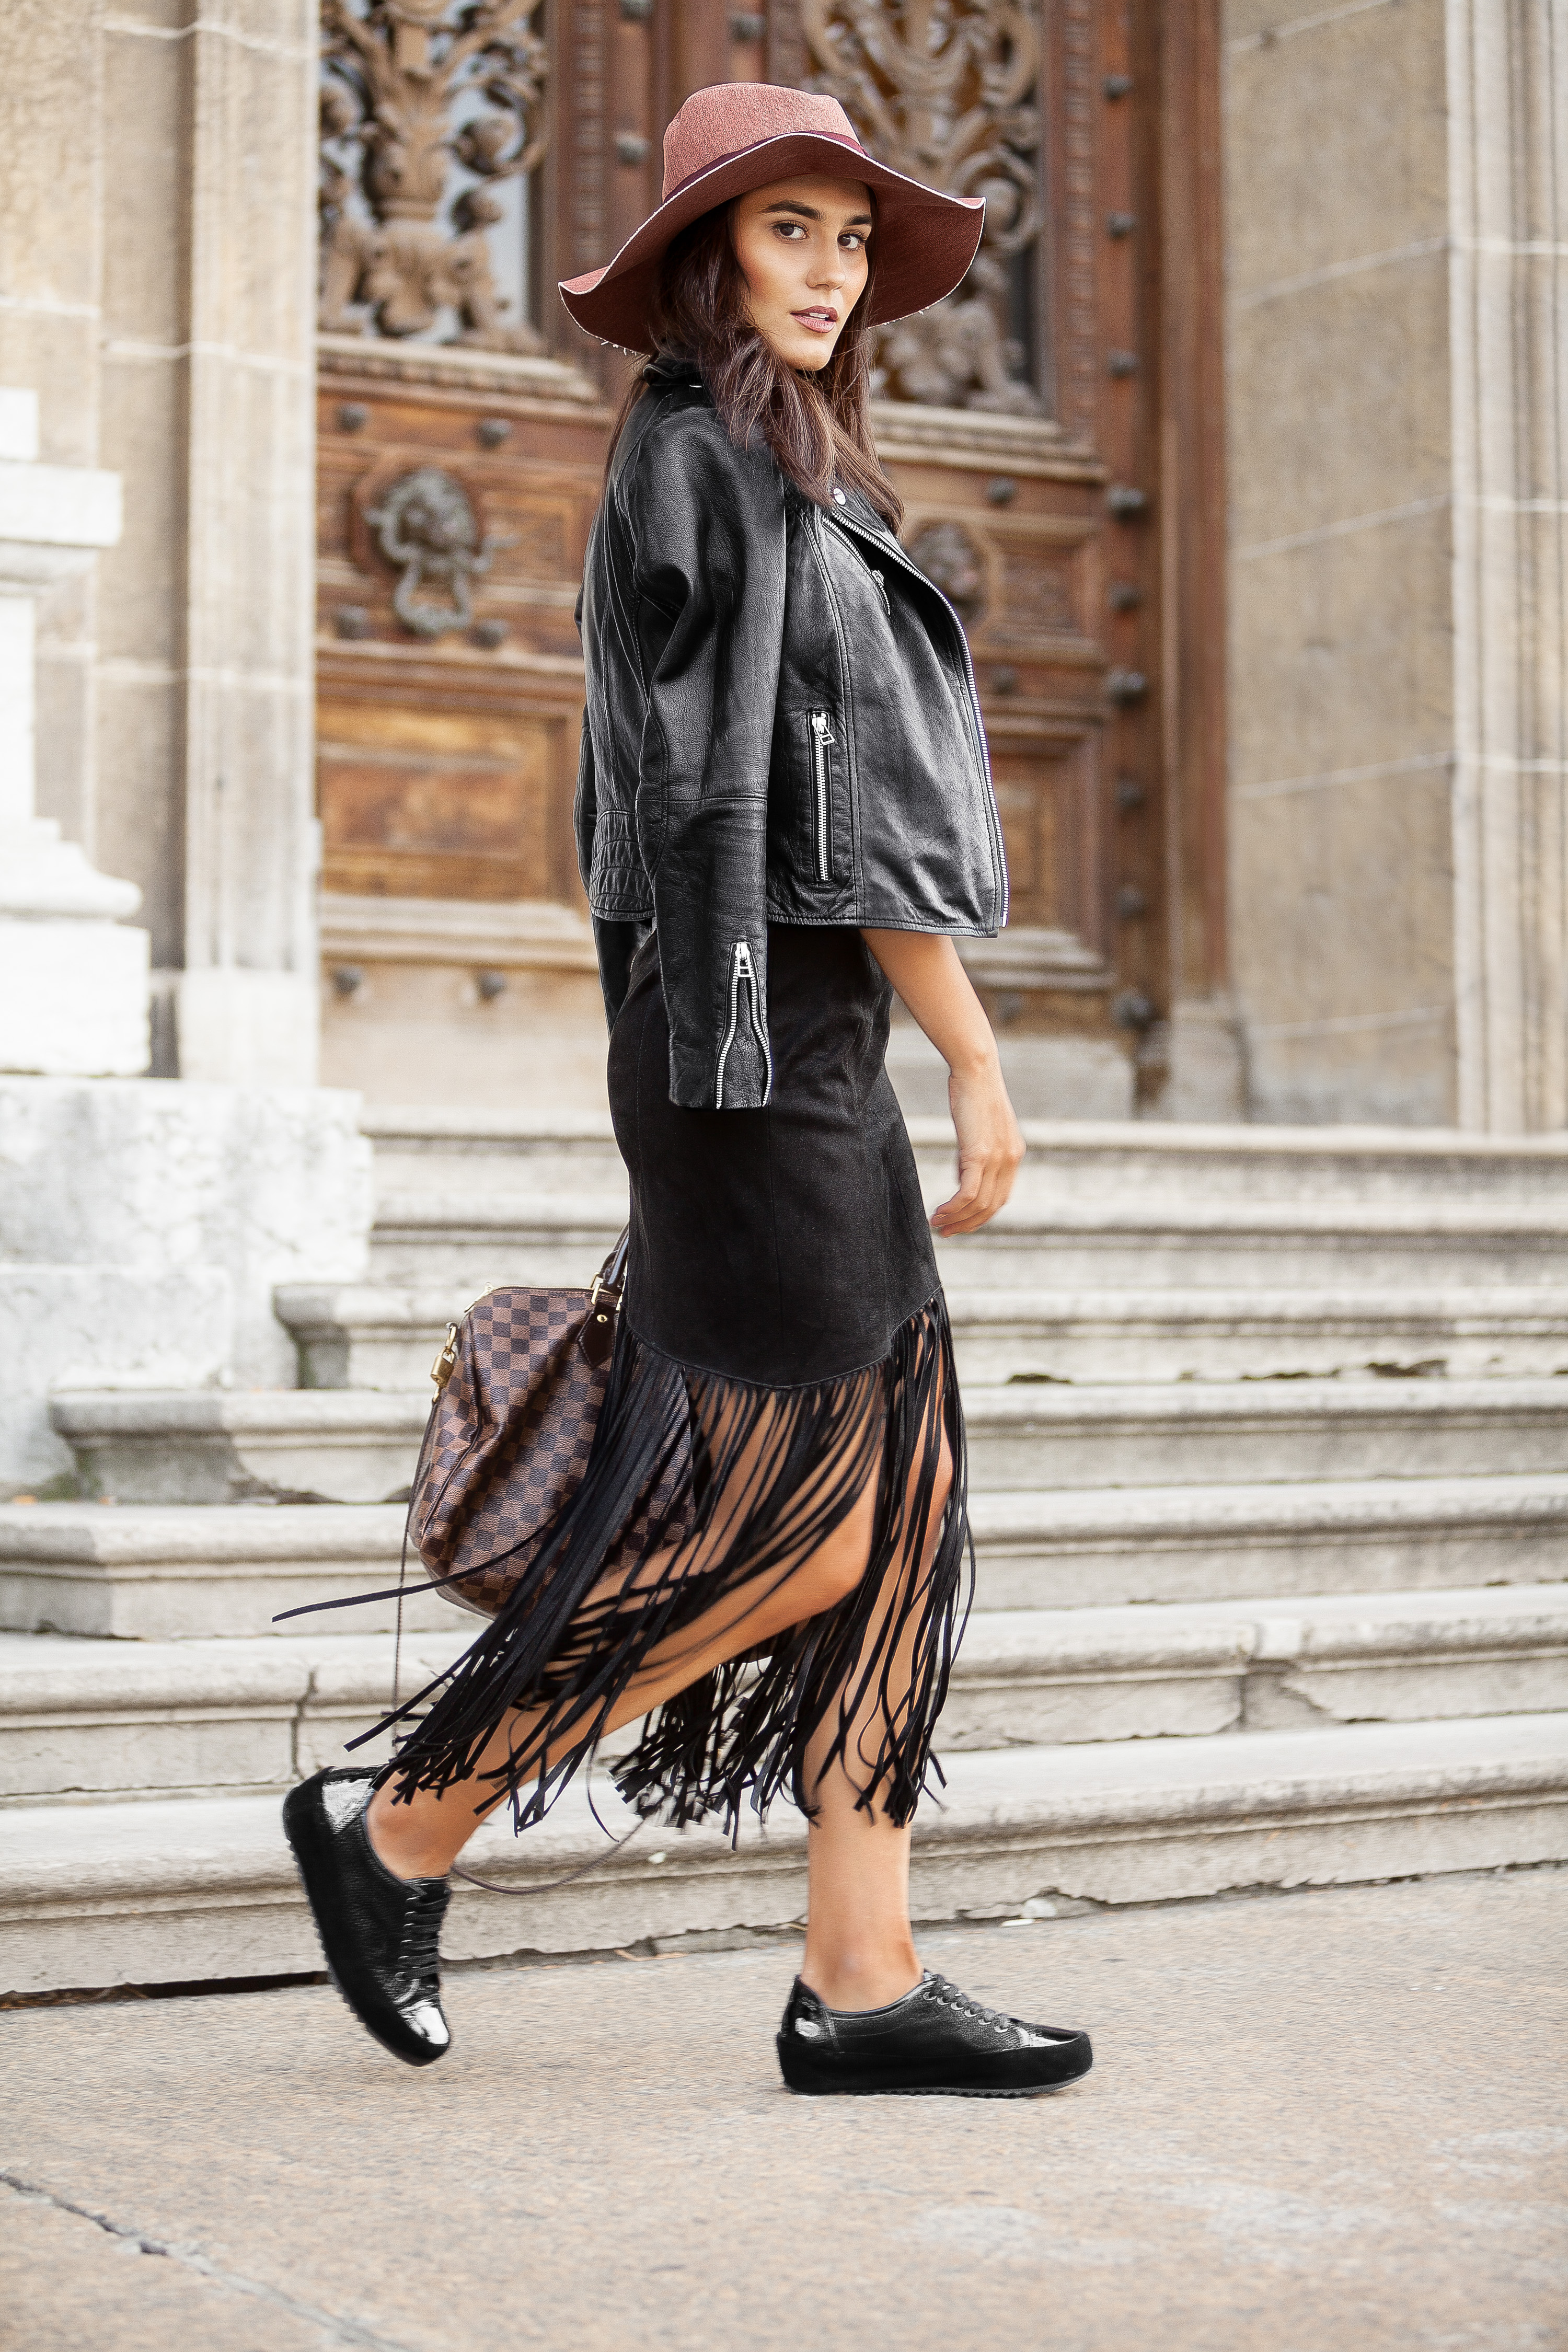 KARVAIN BLACK FRINGES